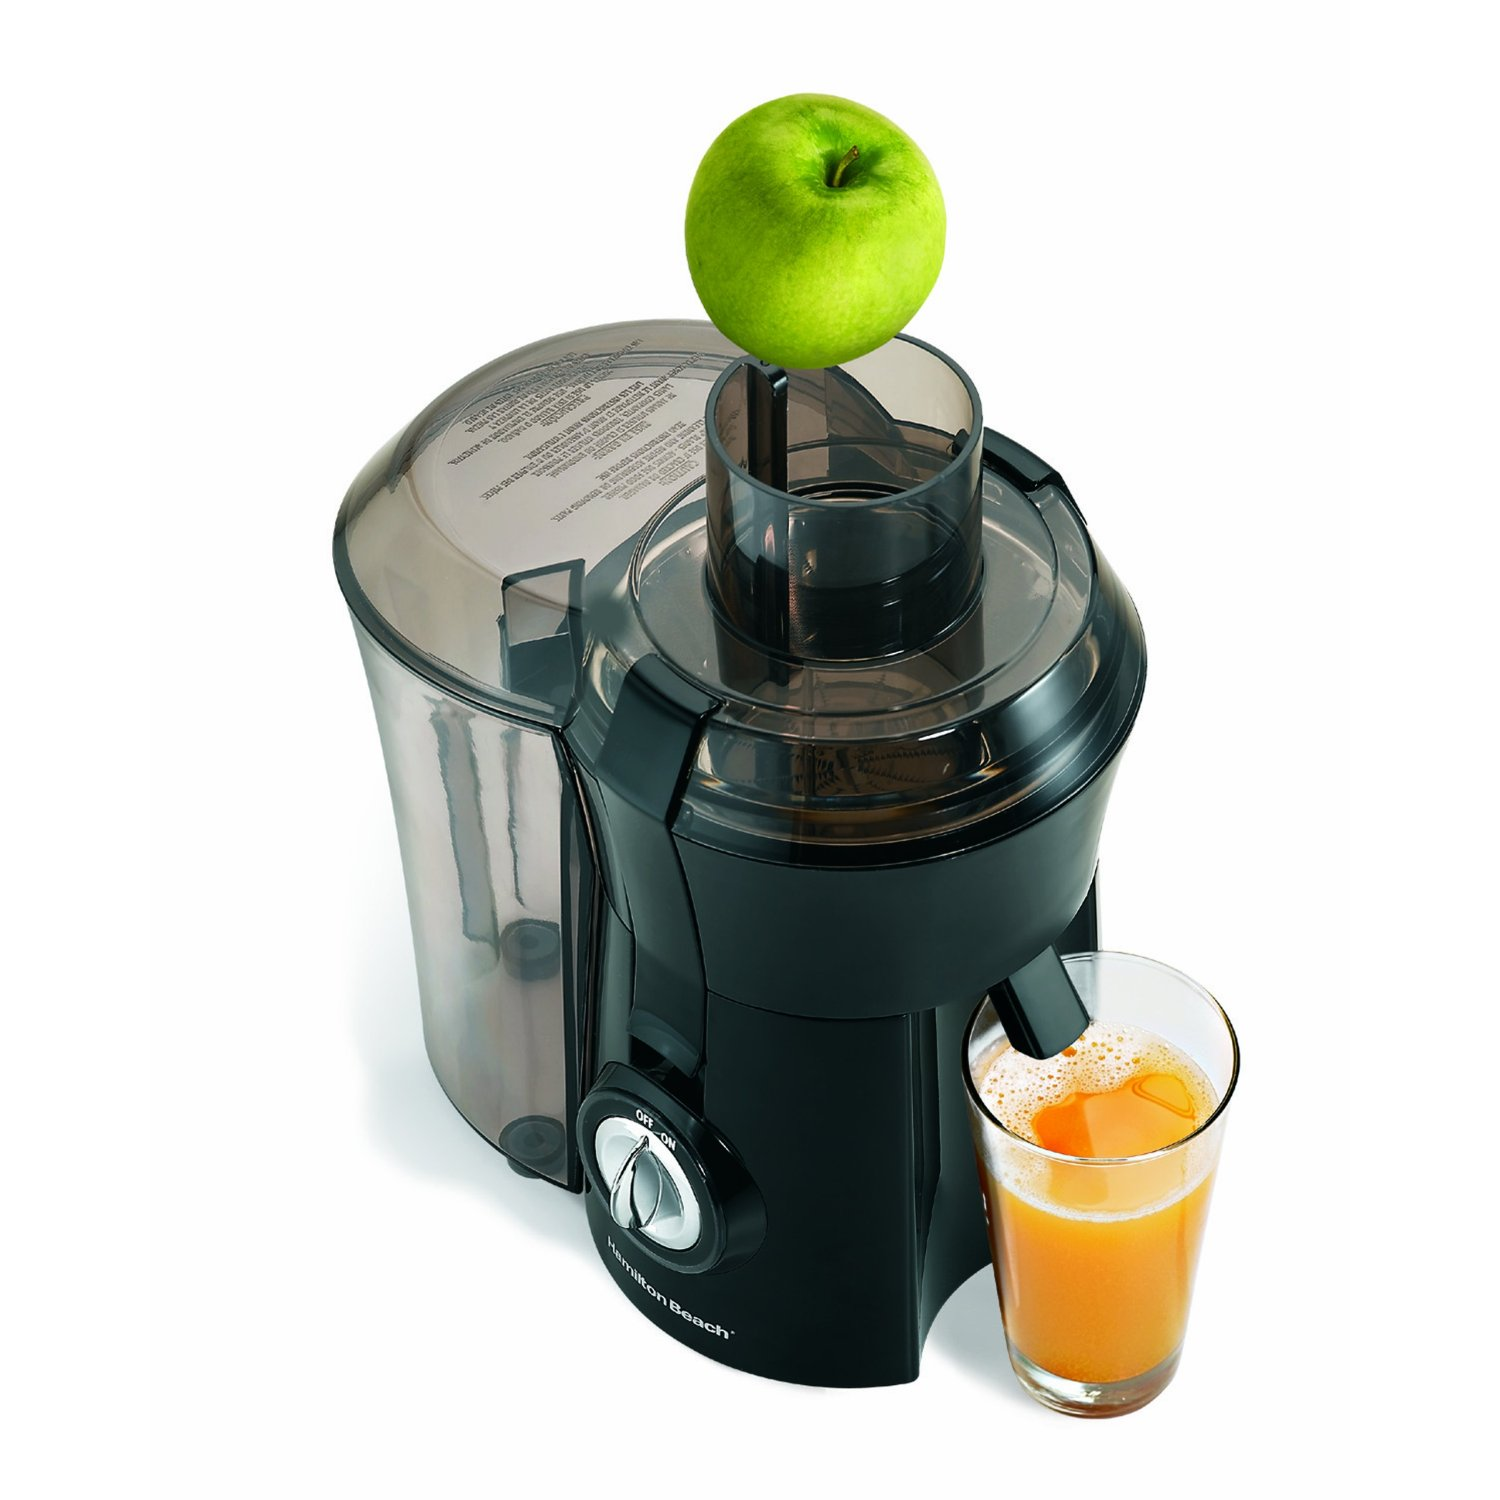 Juicing and Trying New Juicing Recipes